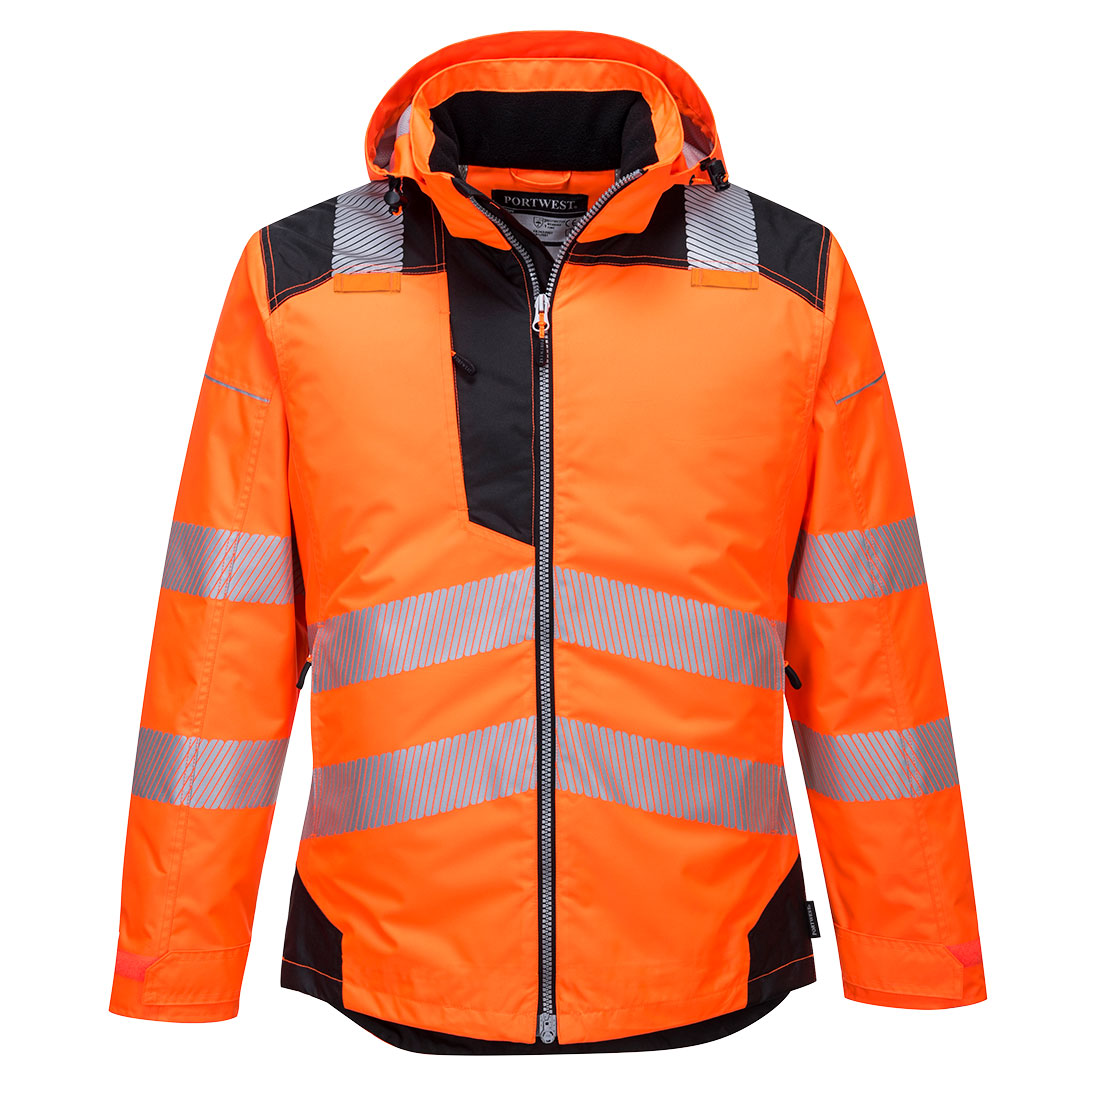 PW3 Hi-Vis Winter Jacket Orange/Black XXL